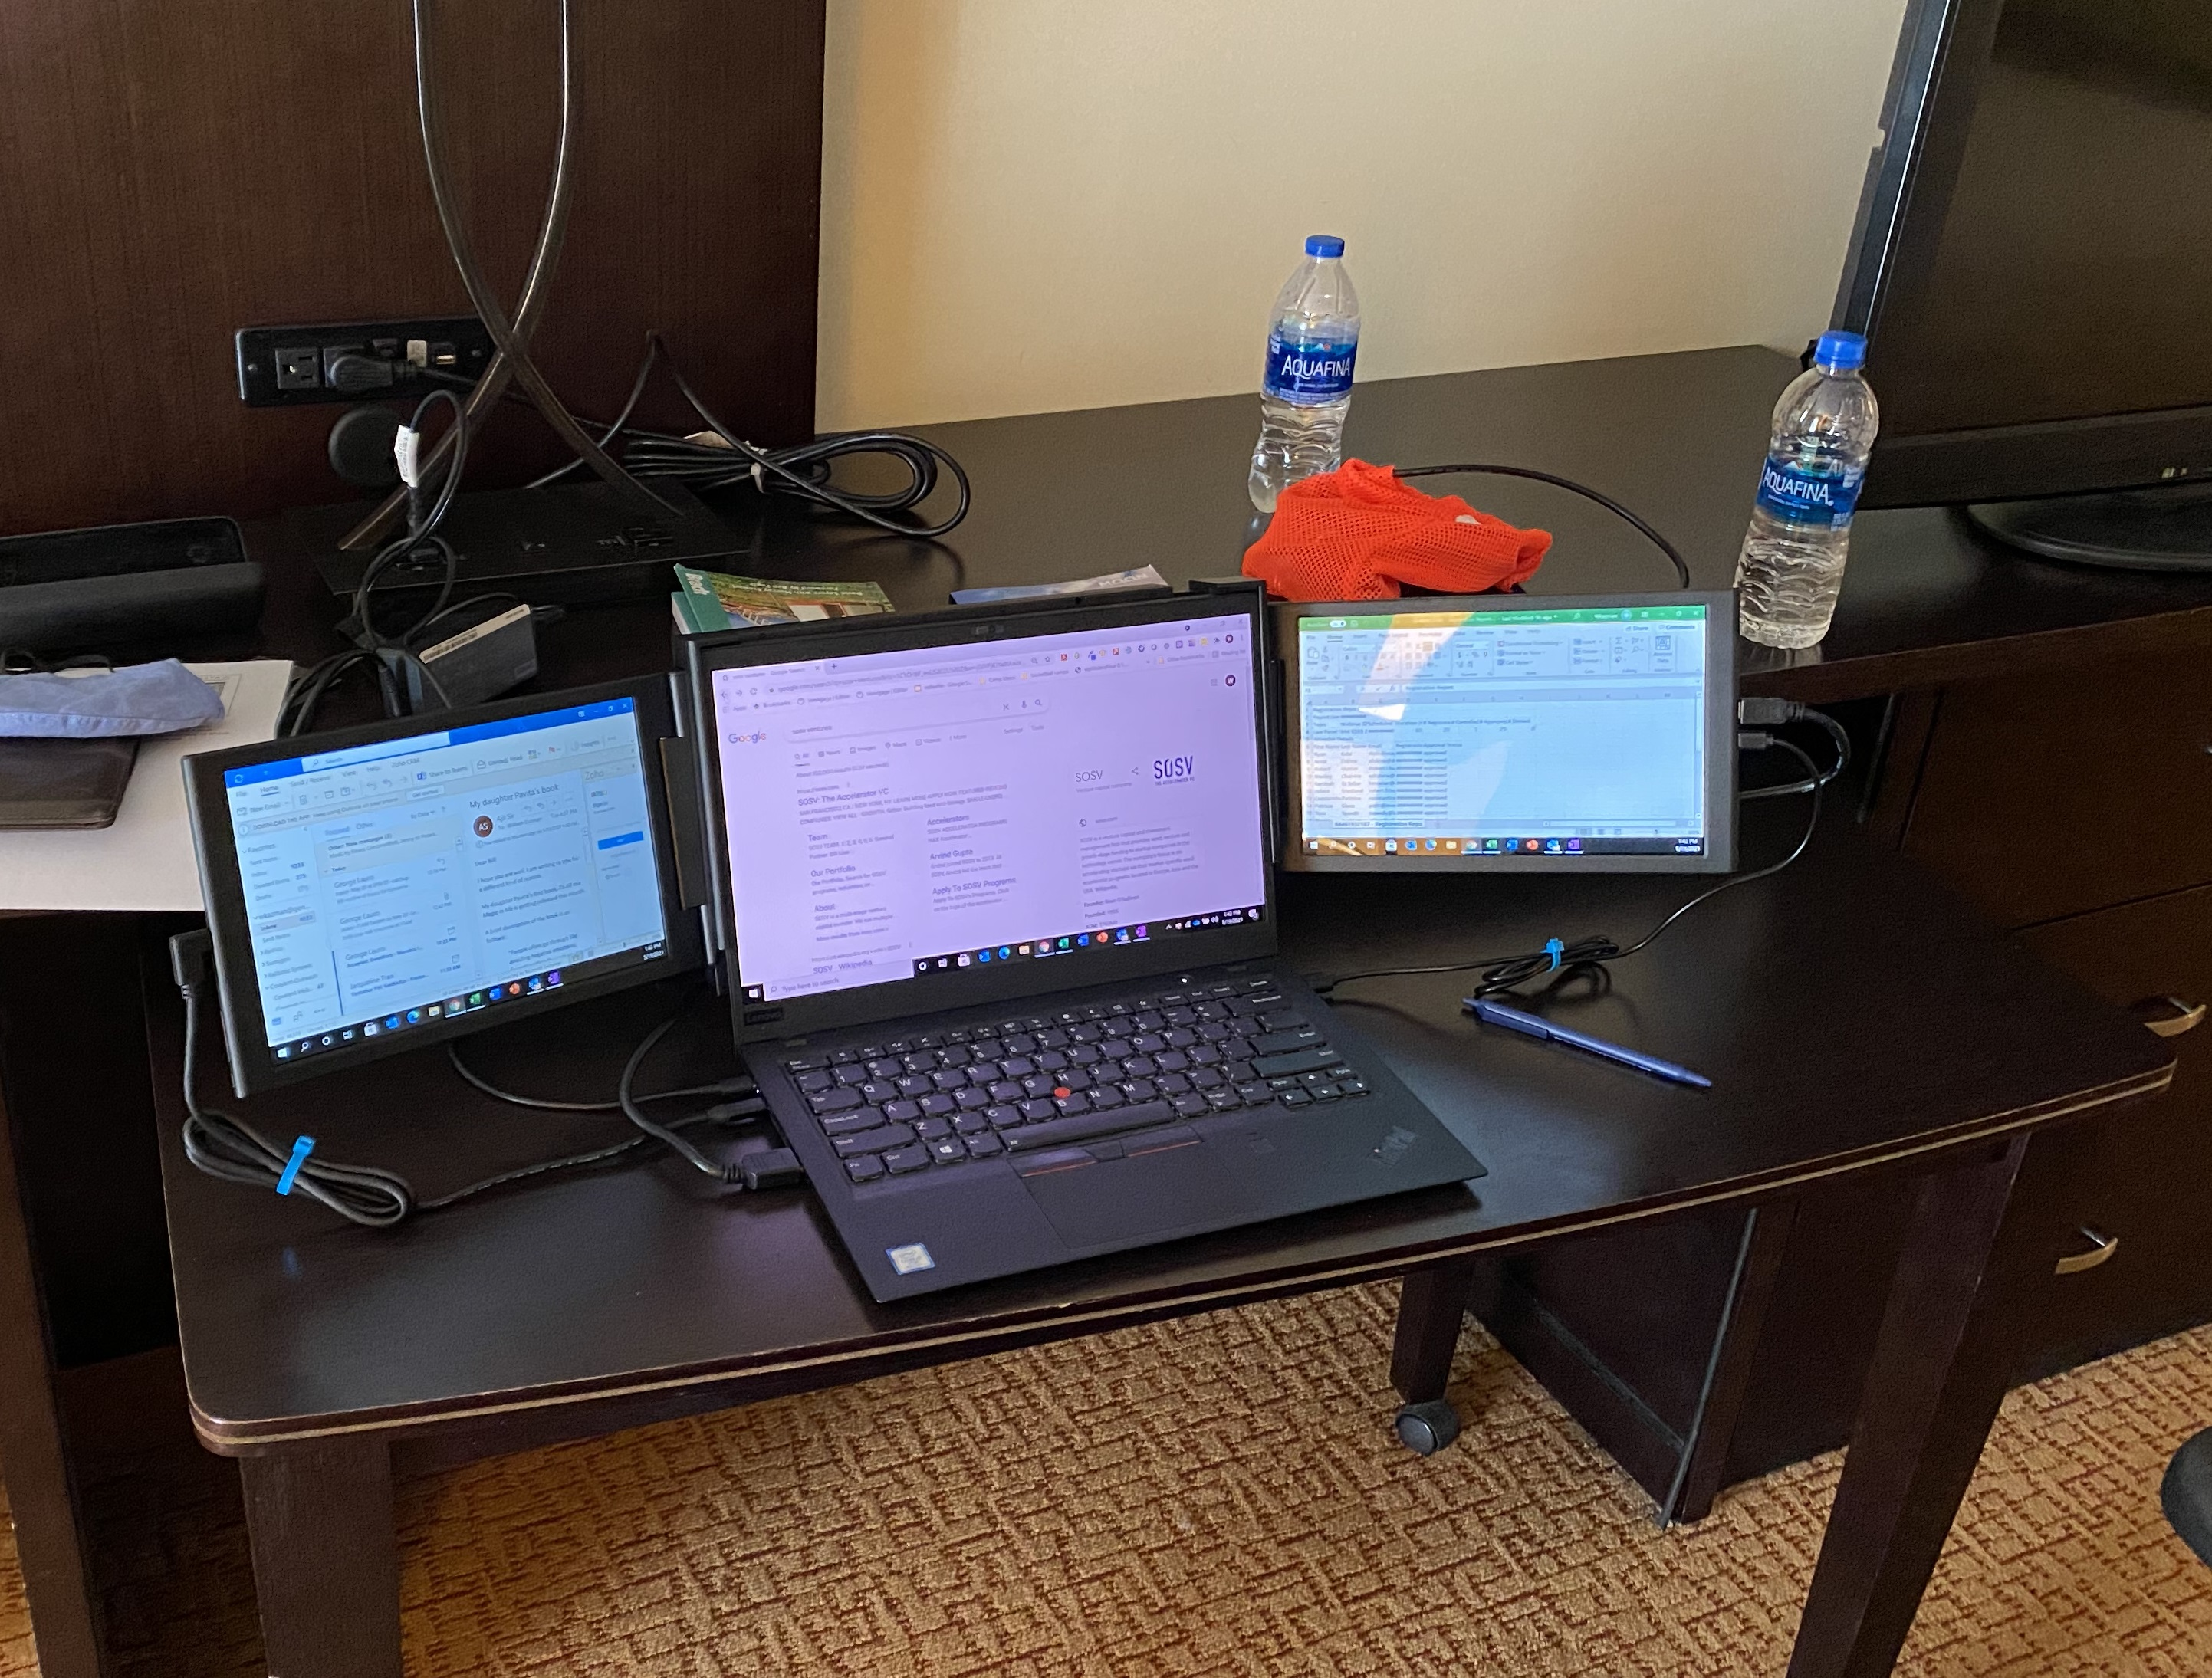 Work from Anywhere? Add extra screens to your laptop!